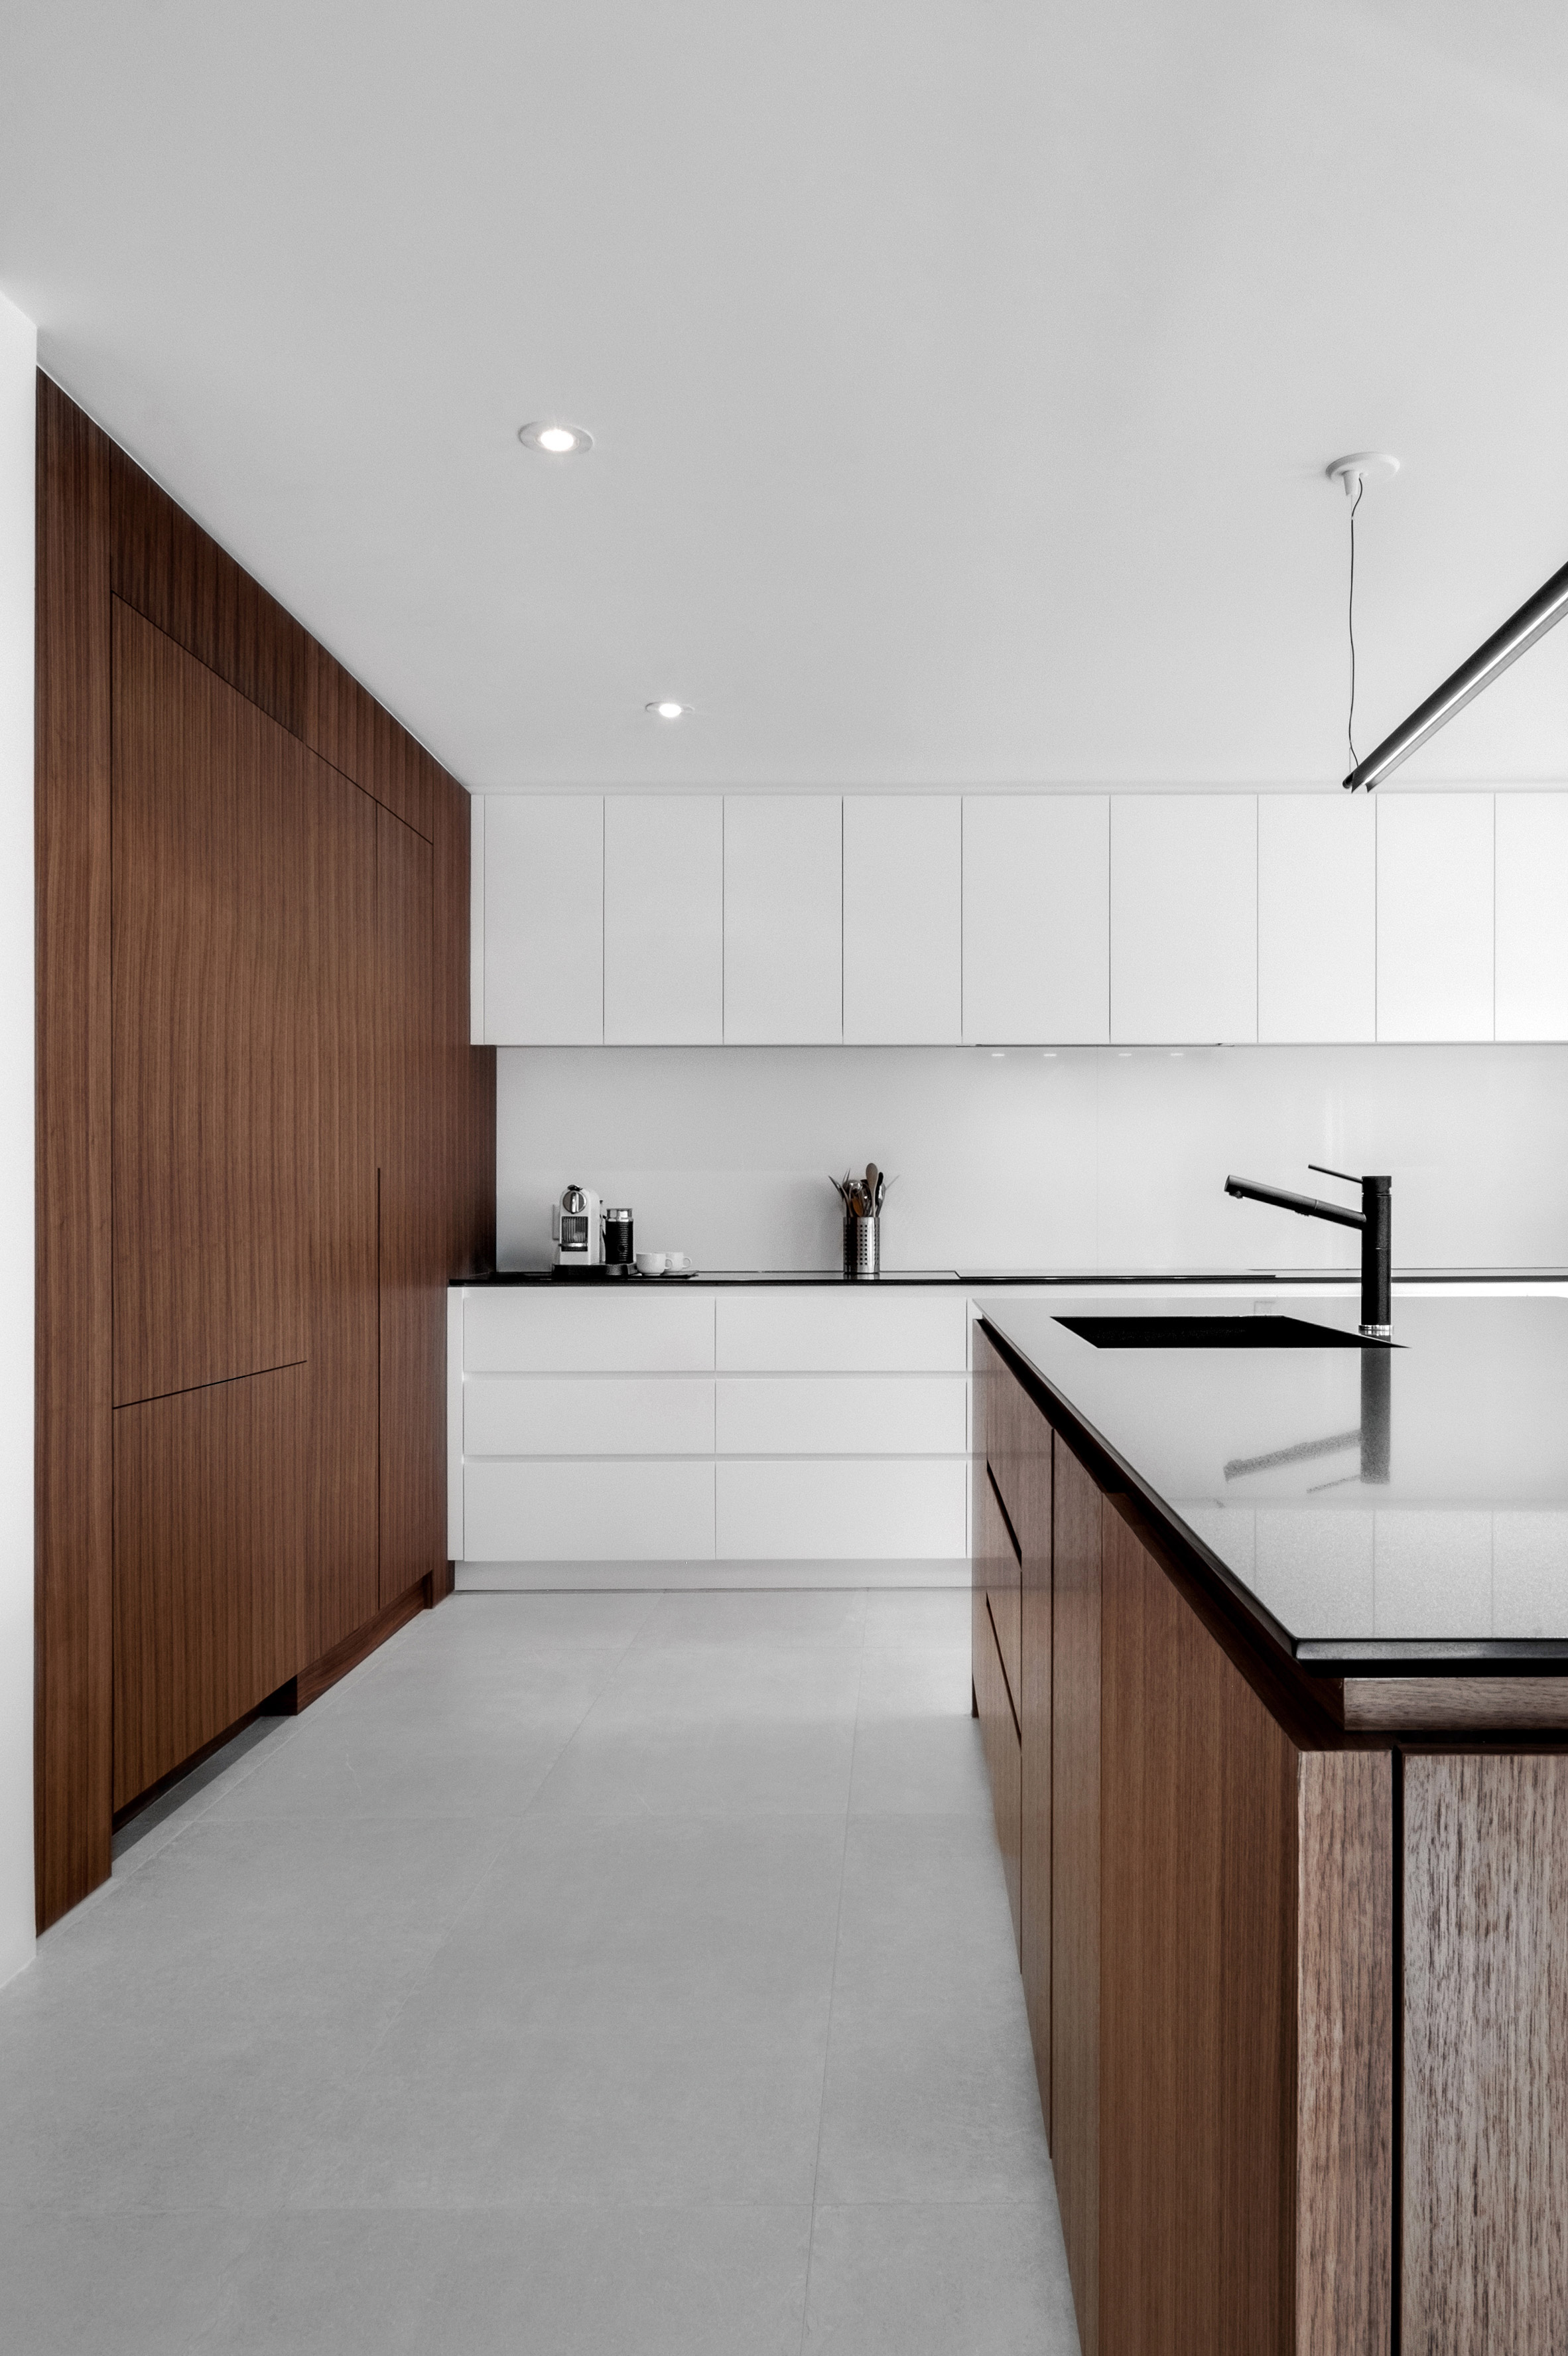 Minimalist Living Space Appareil Architecture Transforms Montreal Home Into Minimalist